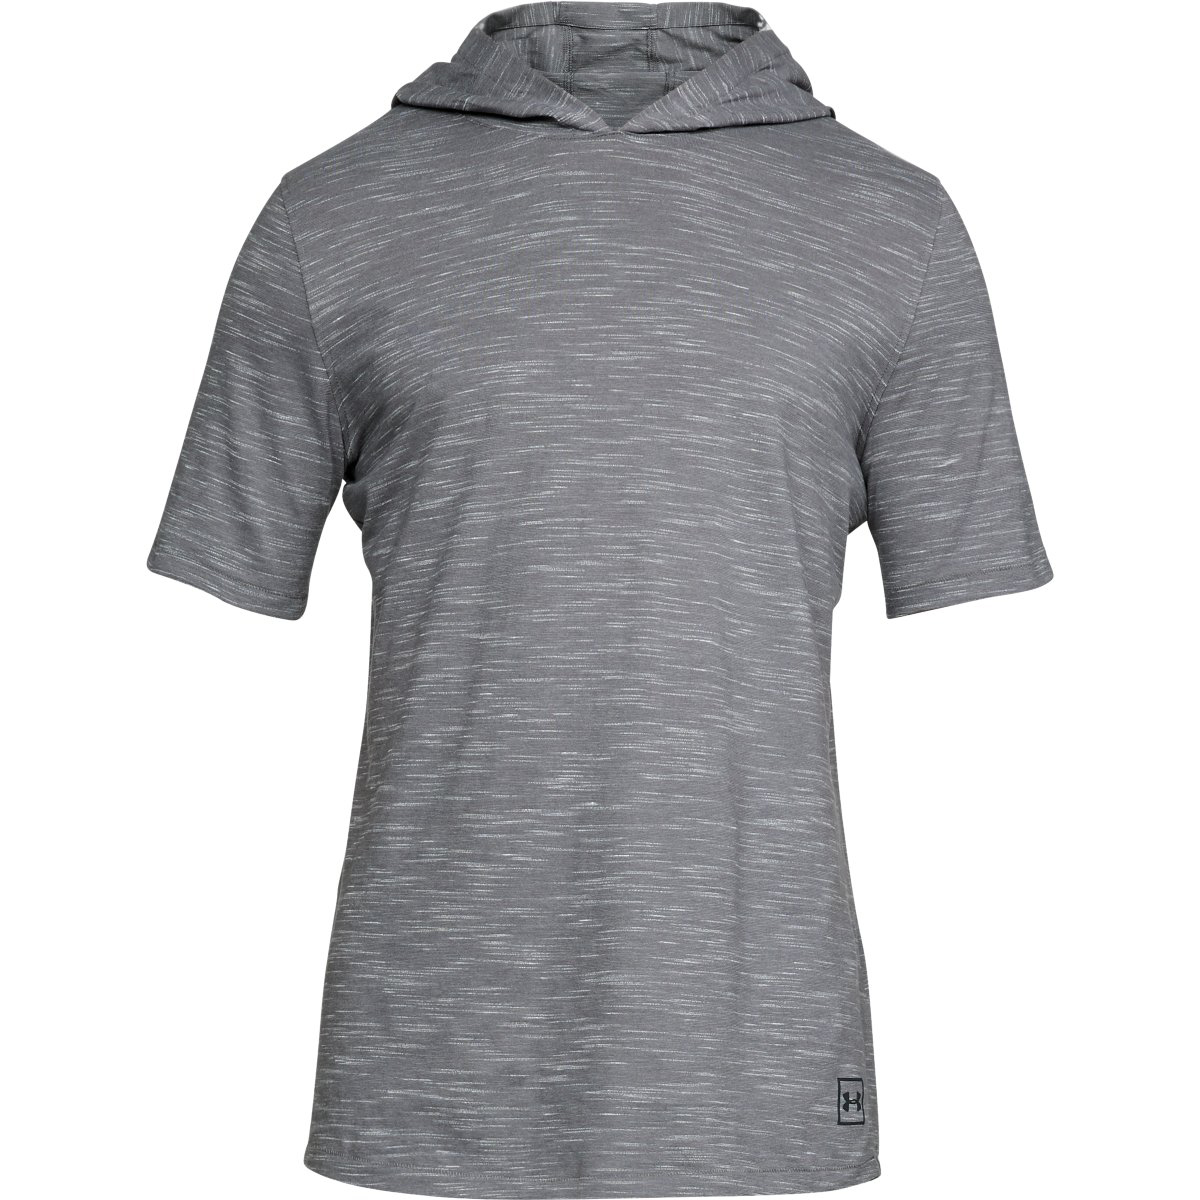 Under Armour Men's Ua Sportstyle Core Short-Sleeve Pullover Hoodie - Black, S